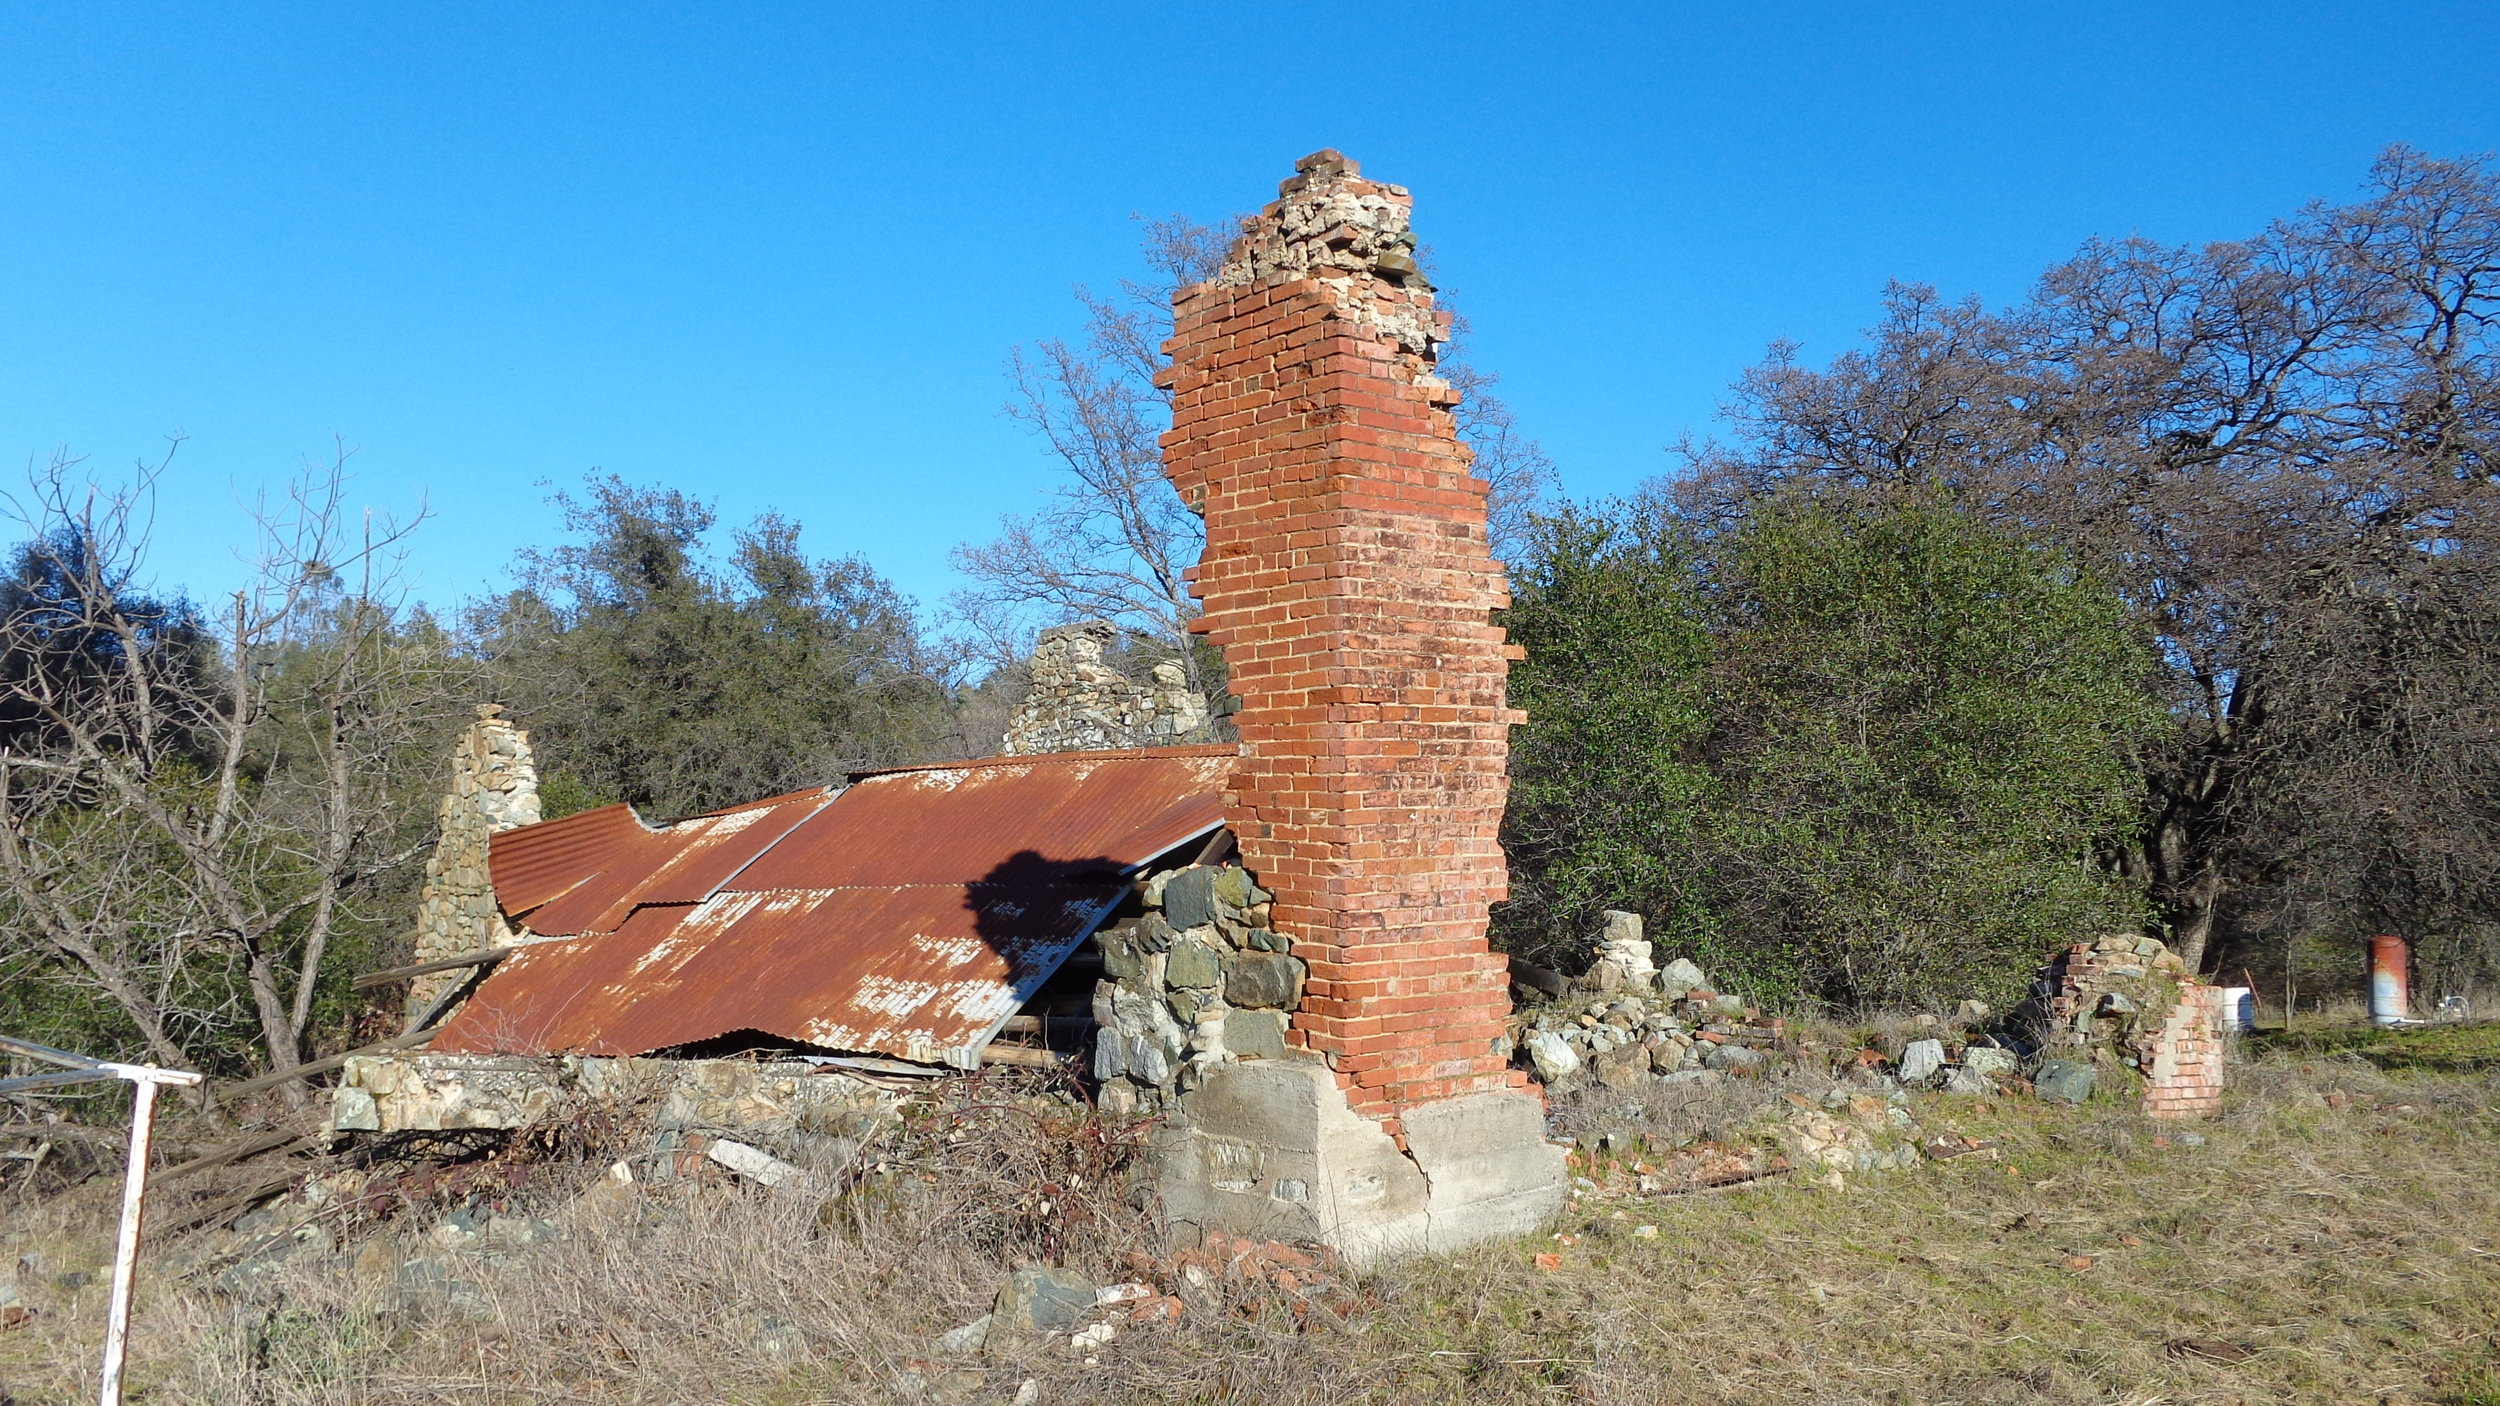 The Wells Fargo building ruins at Timbuctoo, California, in January, 2017. (Photo by Lane Parker)